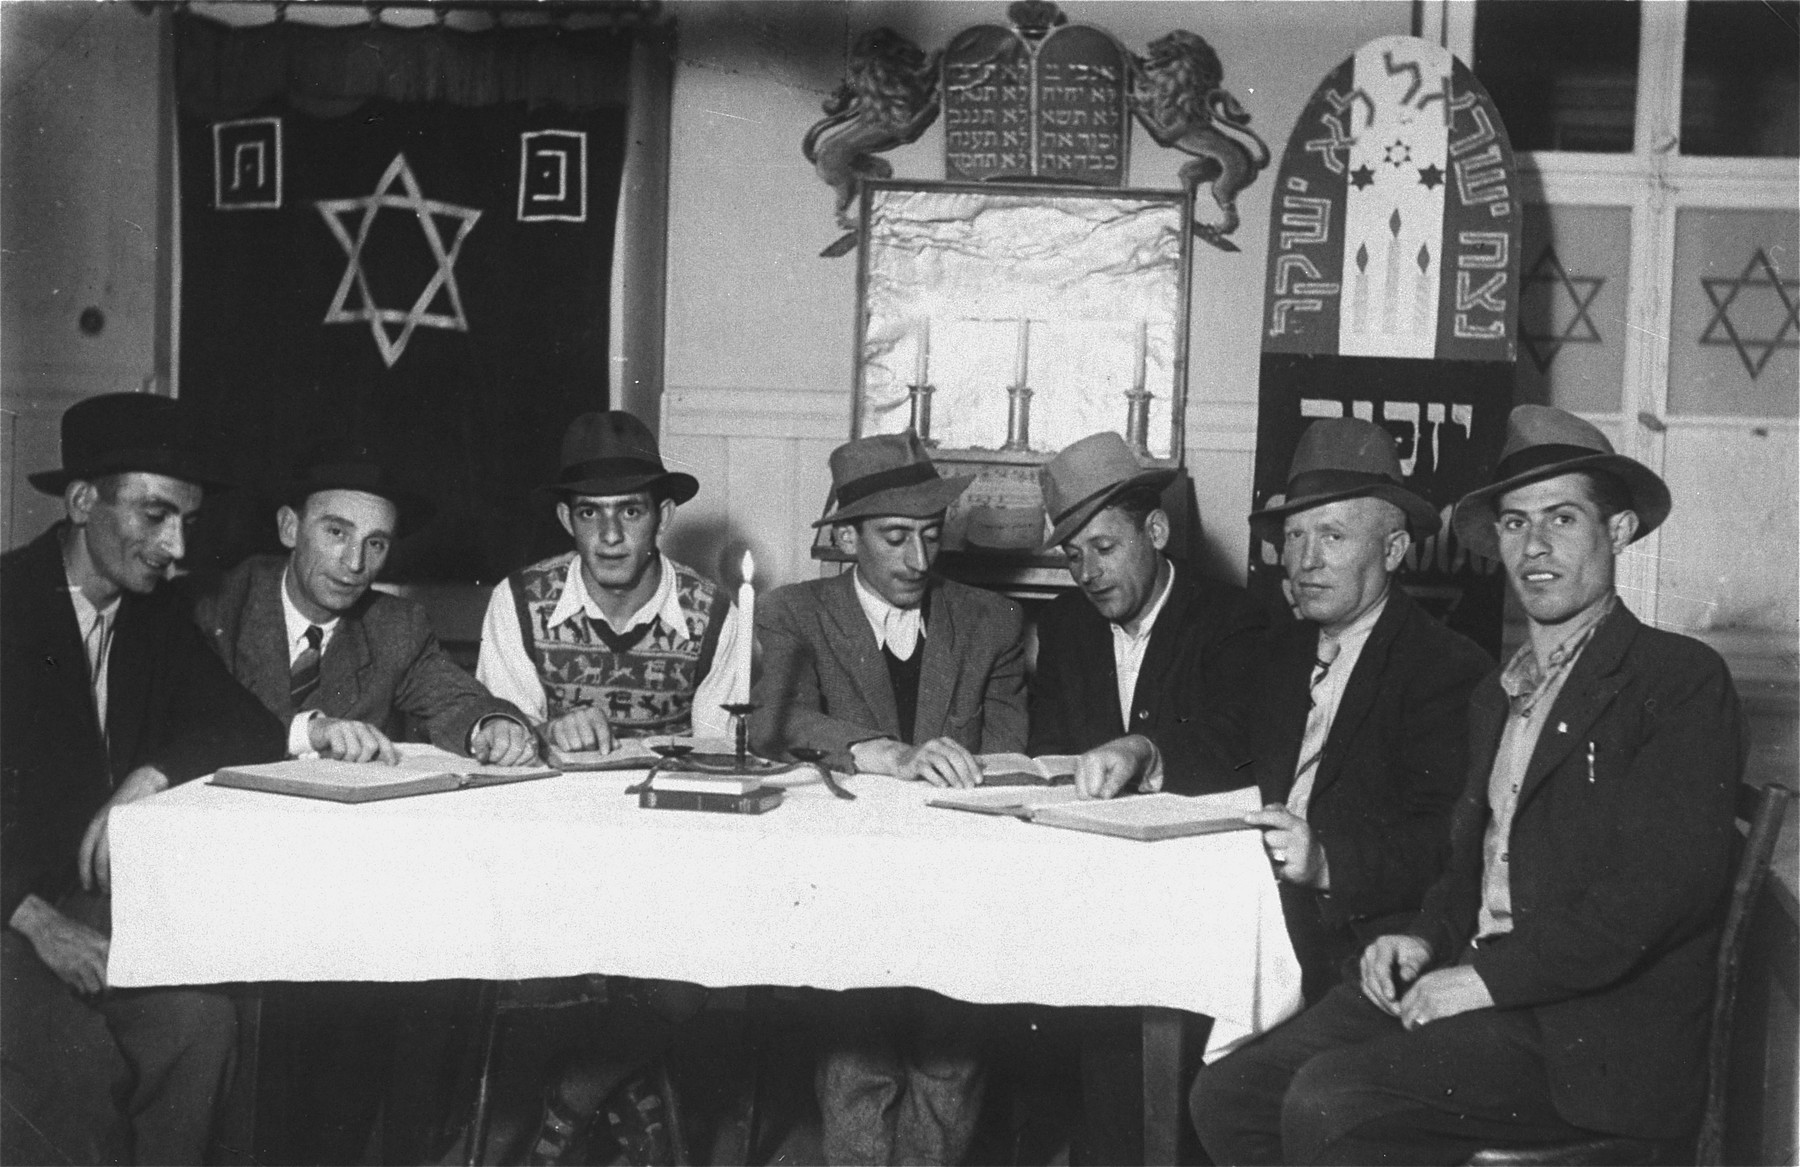 Jewish DPs study religious texts in a synagogue in the Mittenwald displaced persons camp.